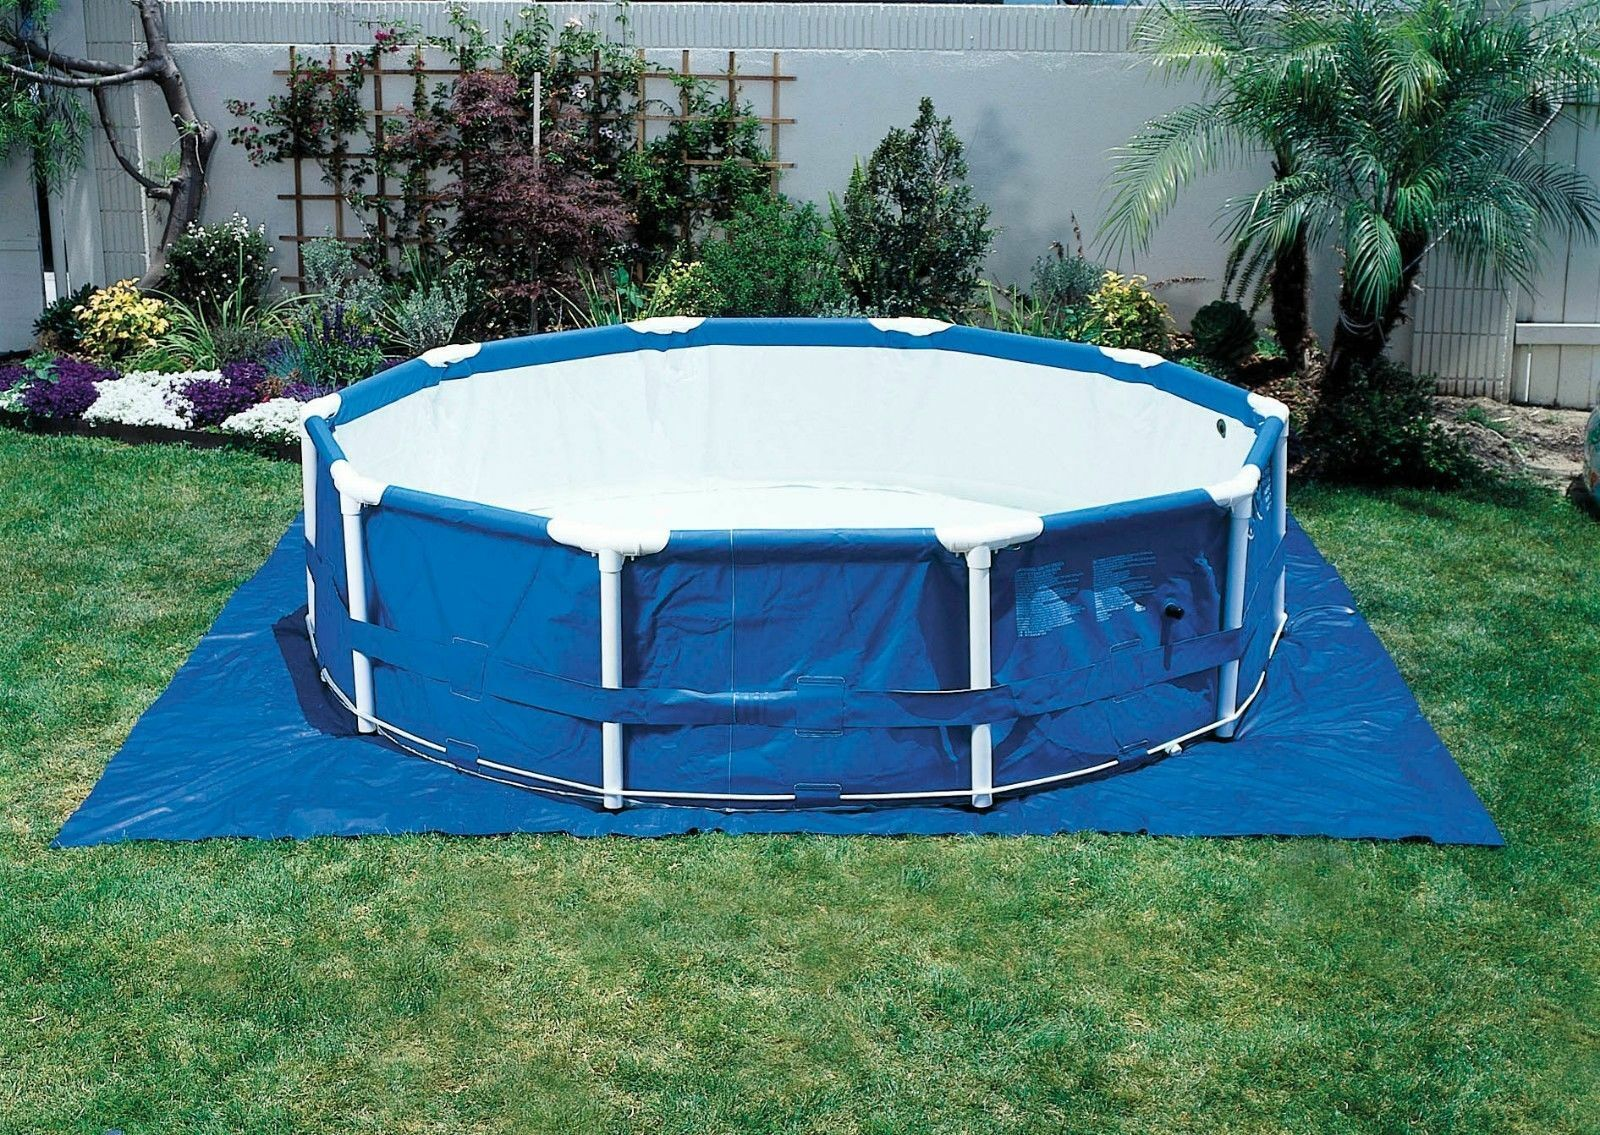 How to put up an above ground swimming pool ebay for Ground swimming pools